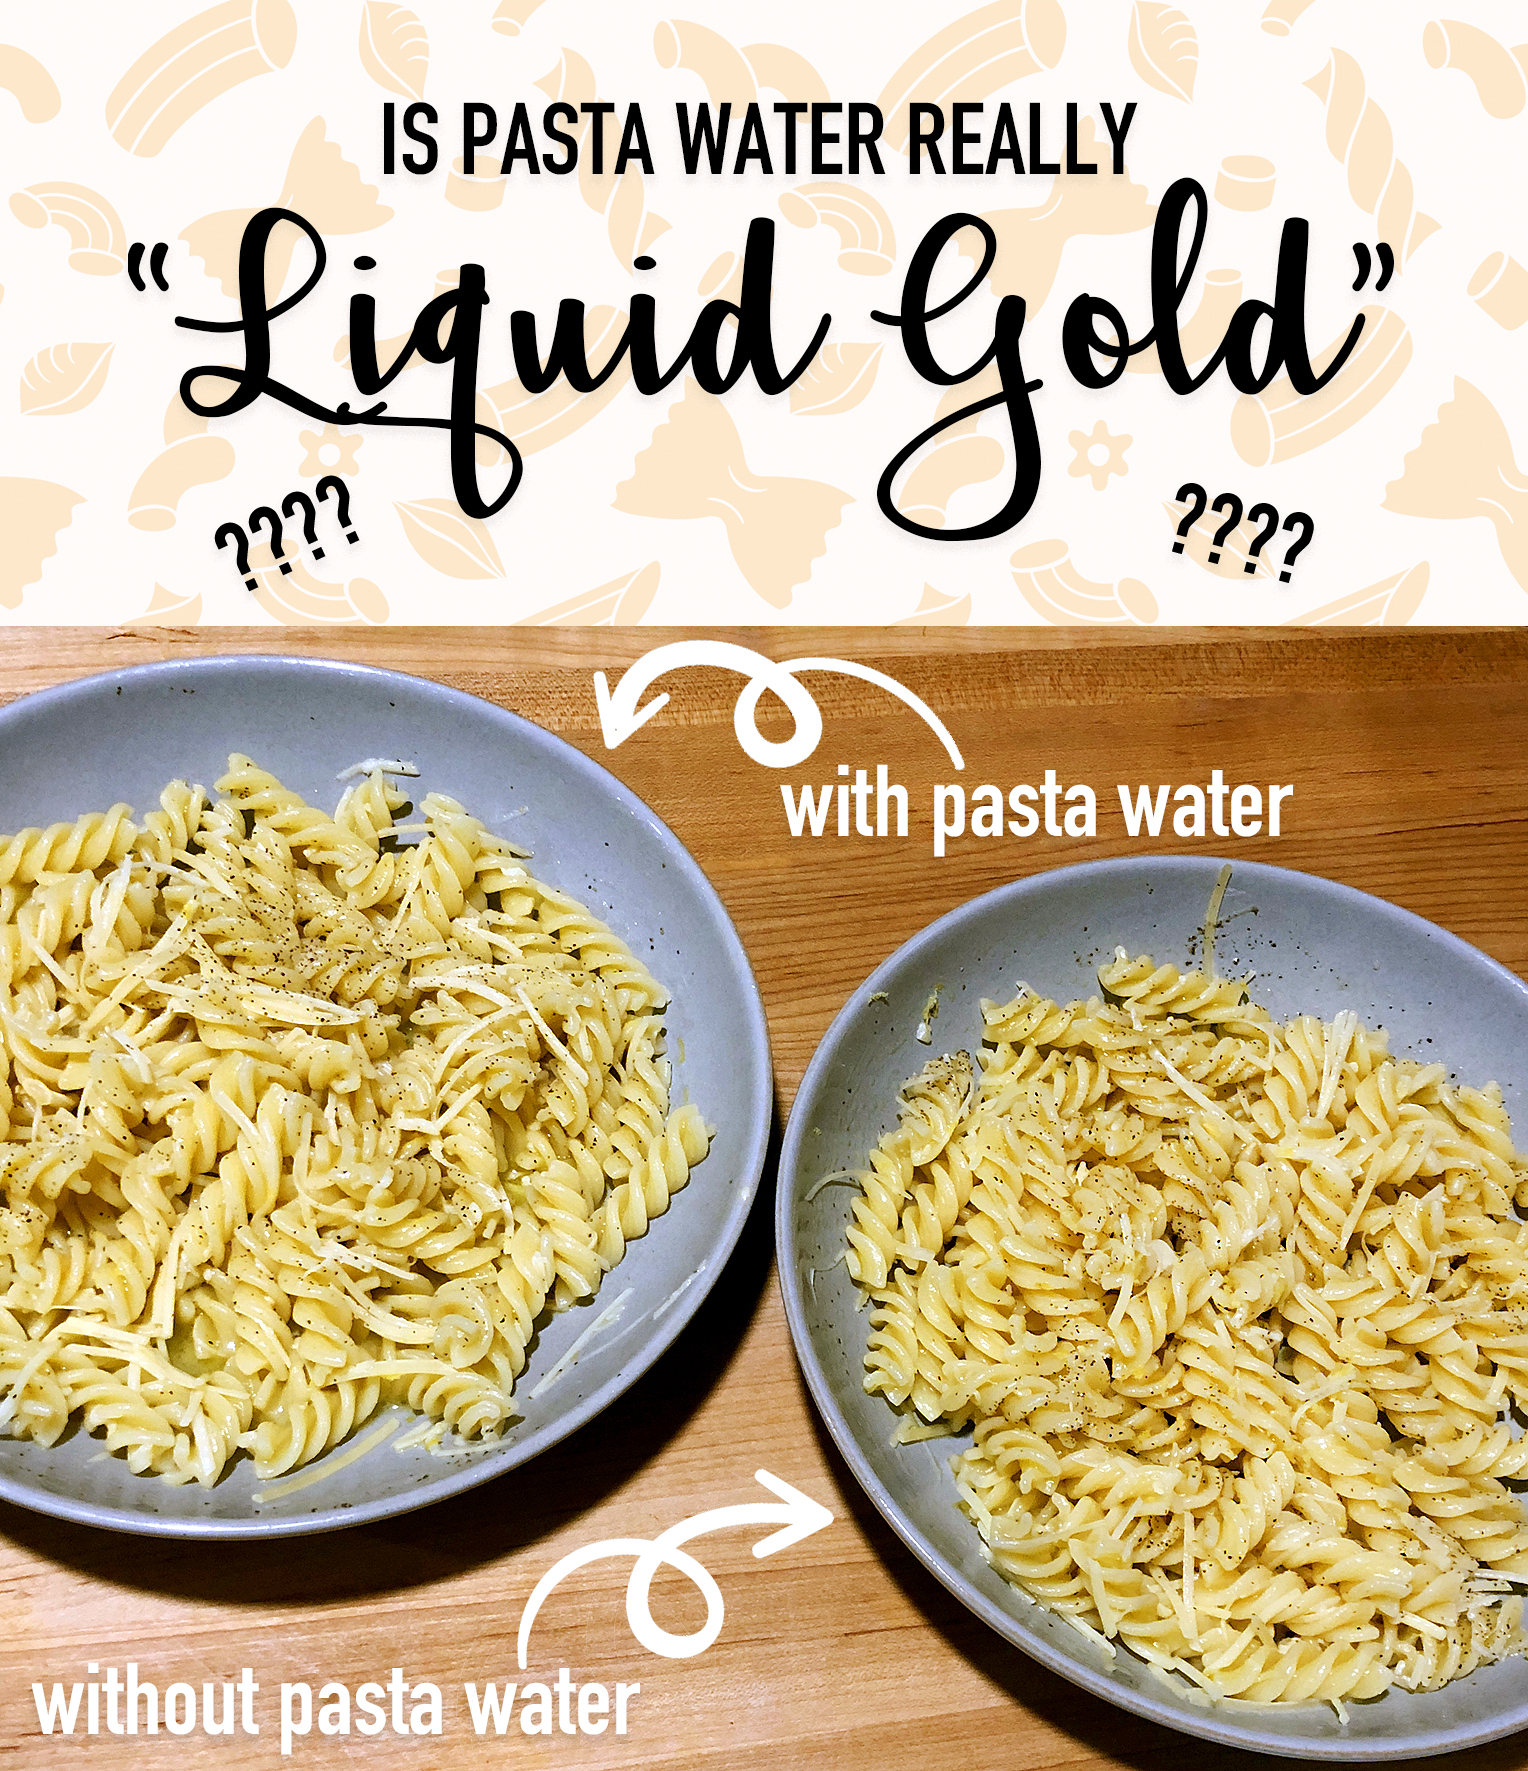 Why is pasta water